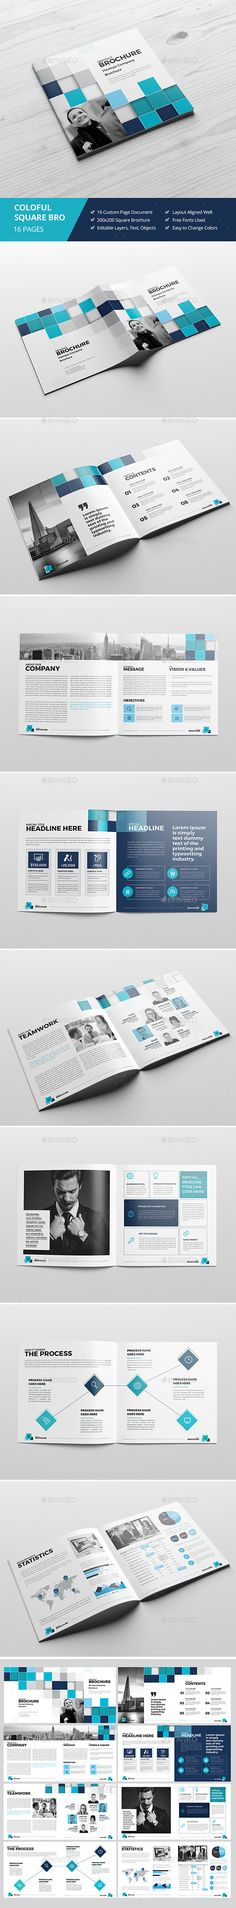 Haweya Abstract Square Brochure Template InDesign INDD. Download here: https://graphicriver.net/item/haweya-abstract-square-brochure-02/17487987?ref=ksioks